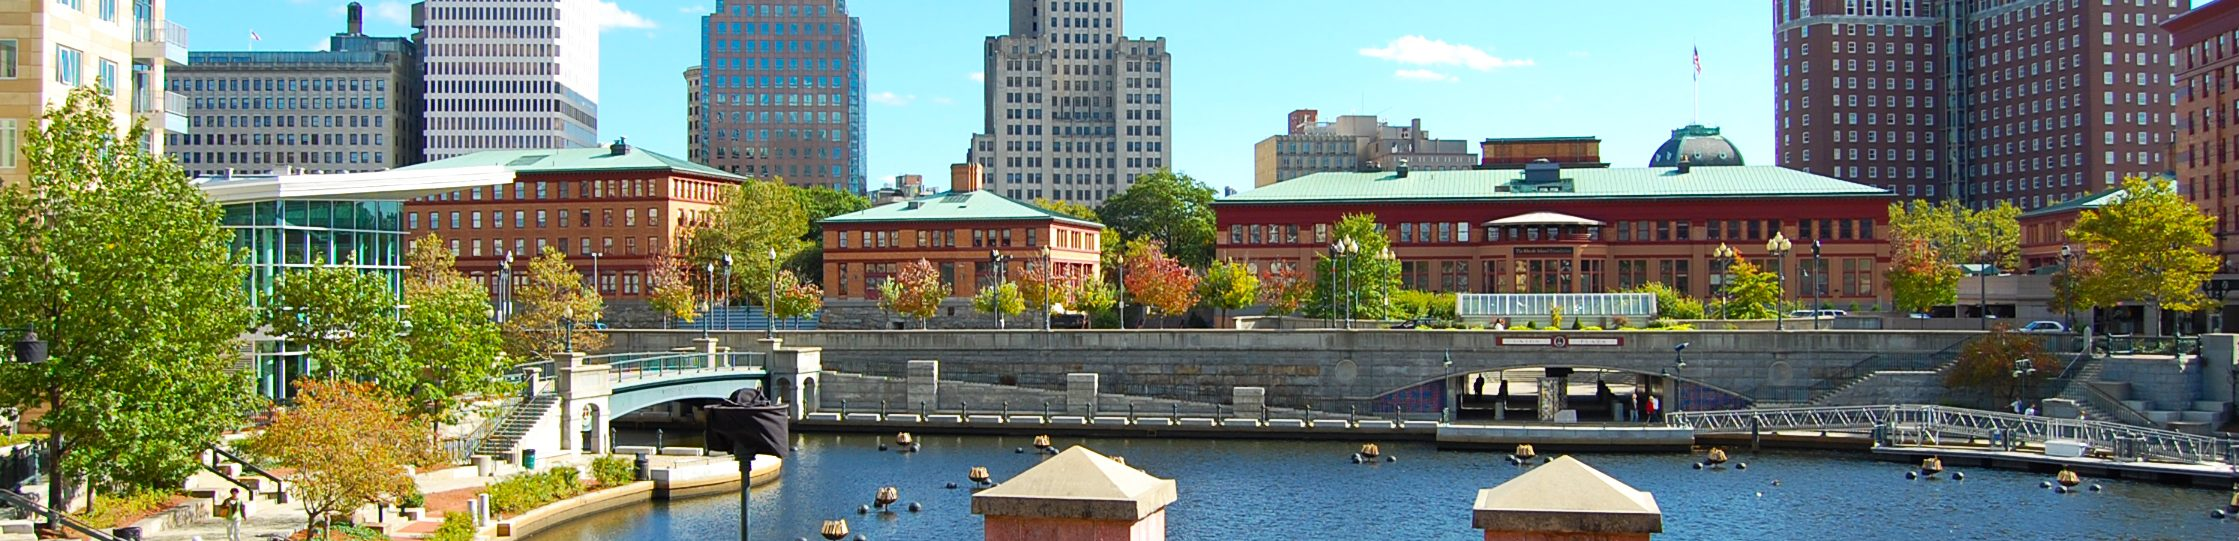 despesquale square in providence history and today Unlike most editing & proofreading services, we edit for everything: grammar, spelling, punctuation, idea flow, sentence structure, & more get started now.